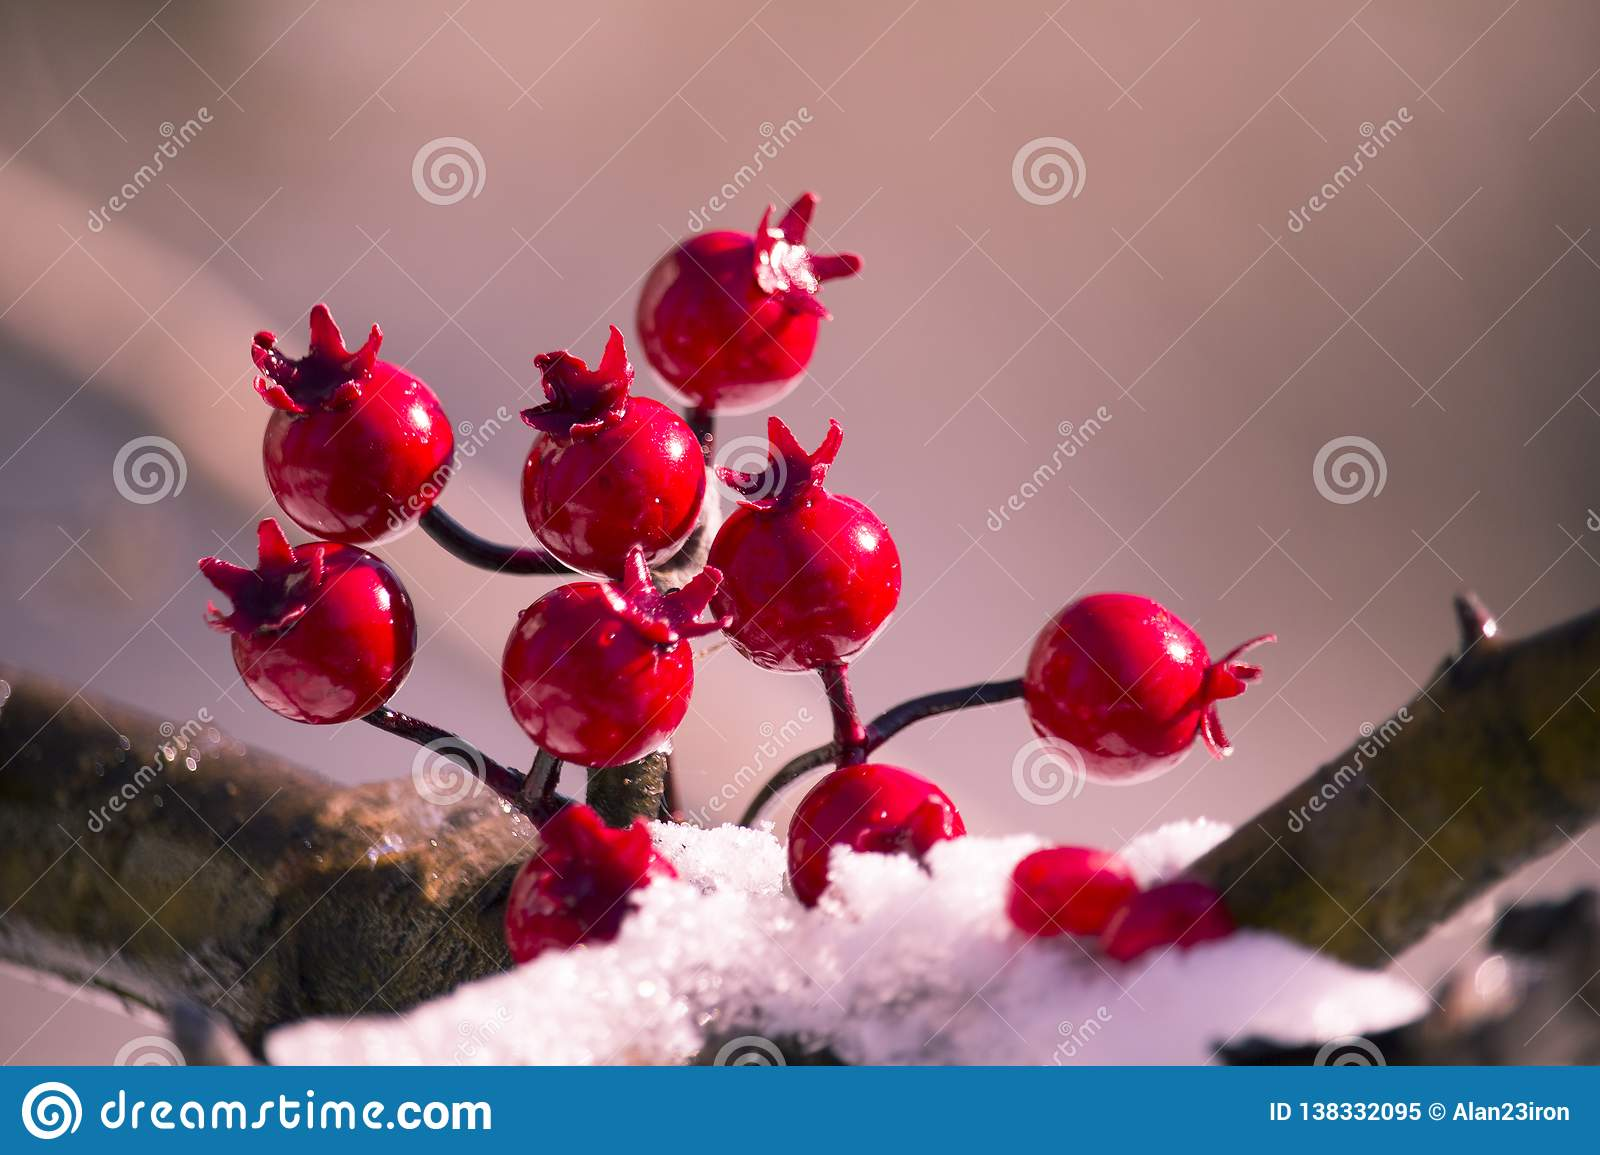 bright red berries on a snow covered branch